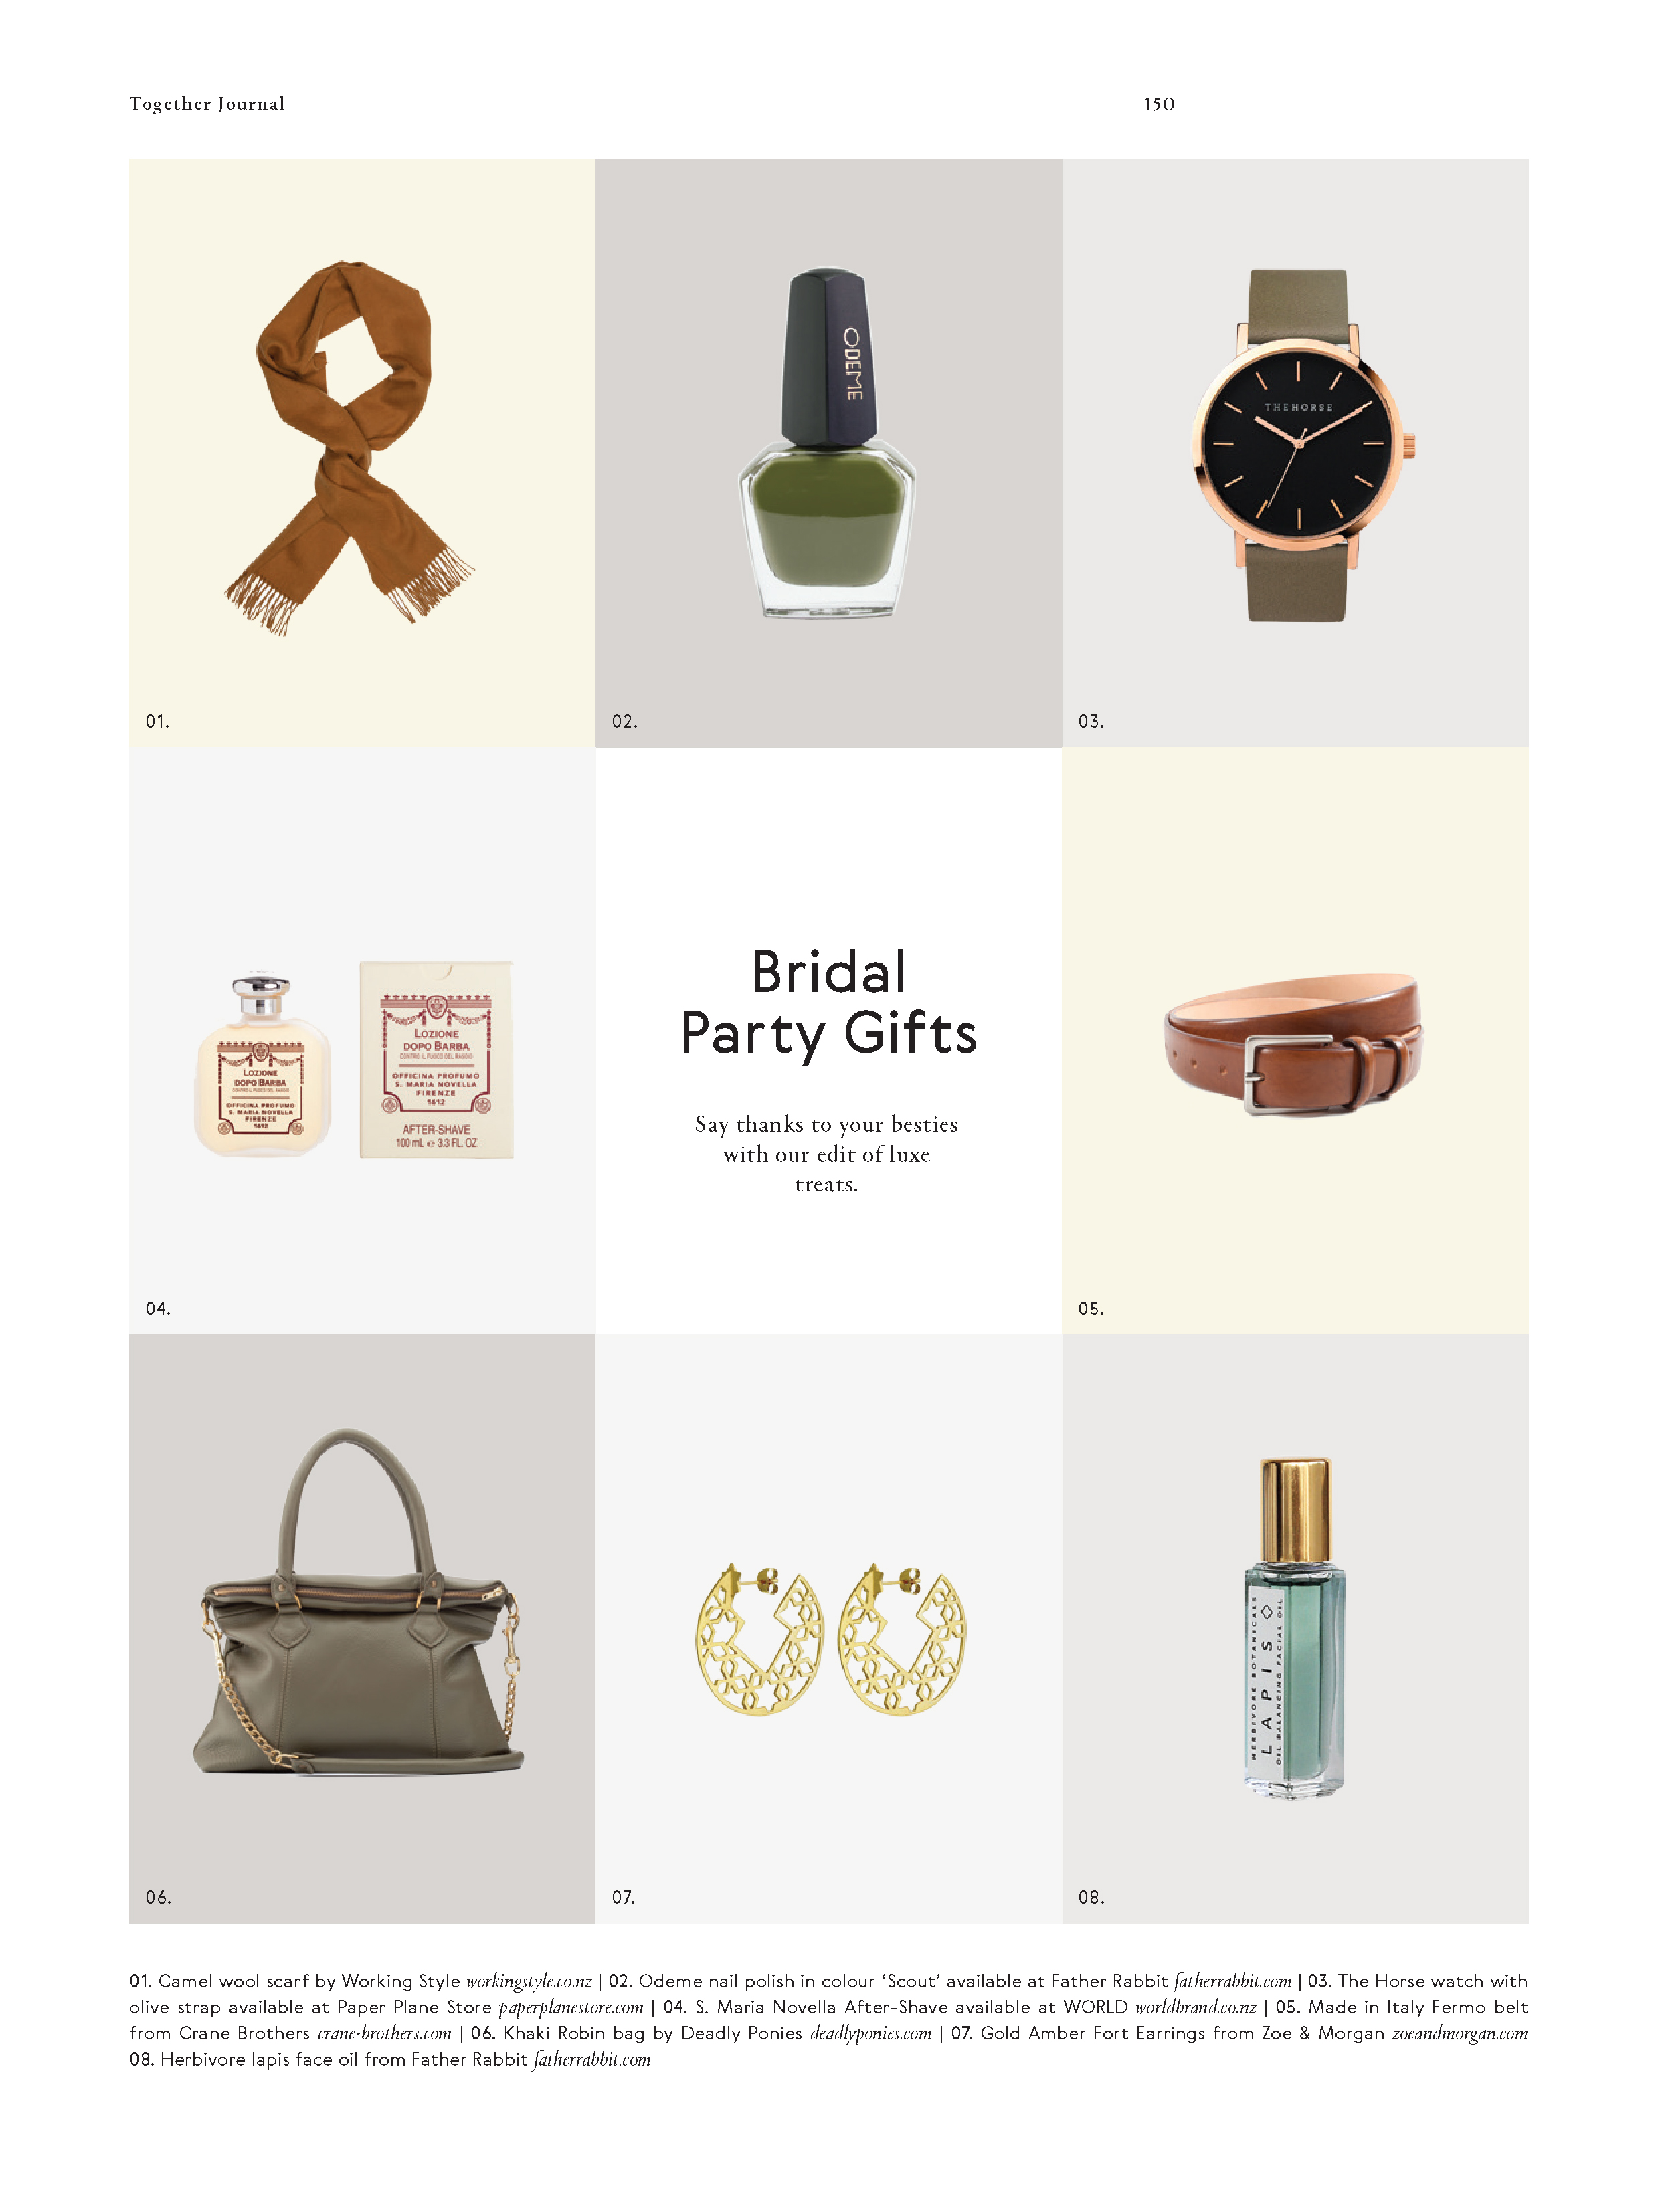 Categories: Inspiration-Bridal Party Gifts